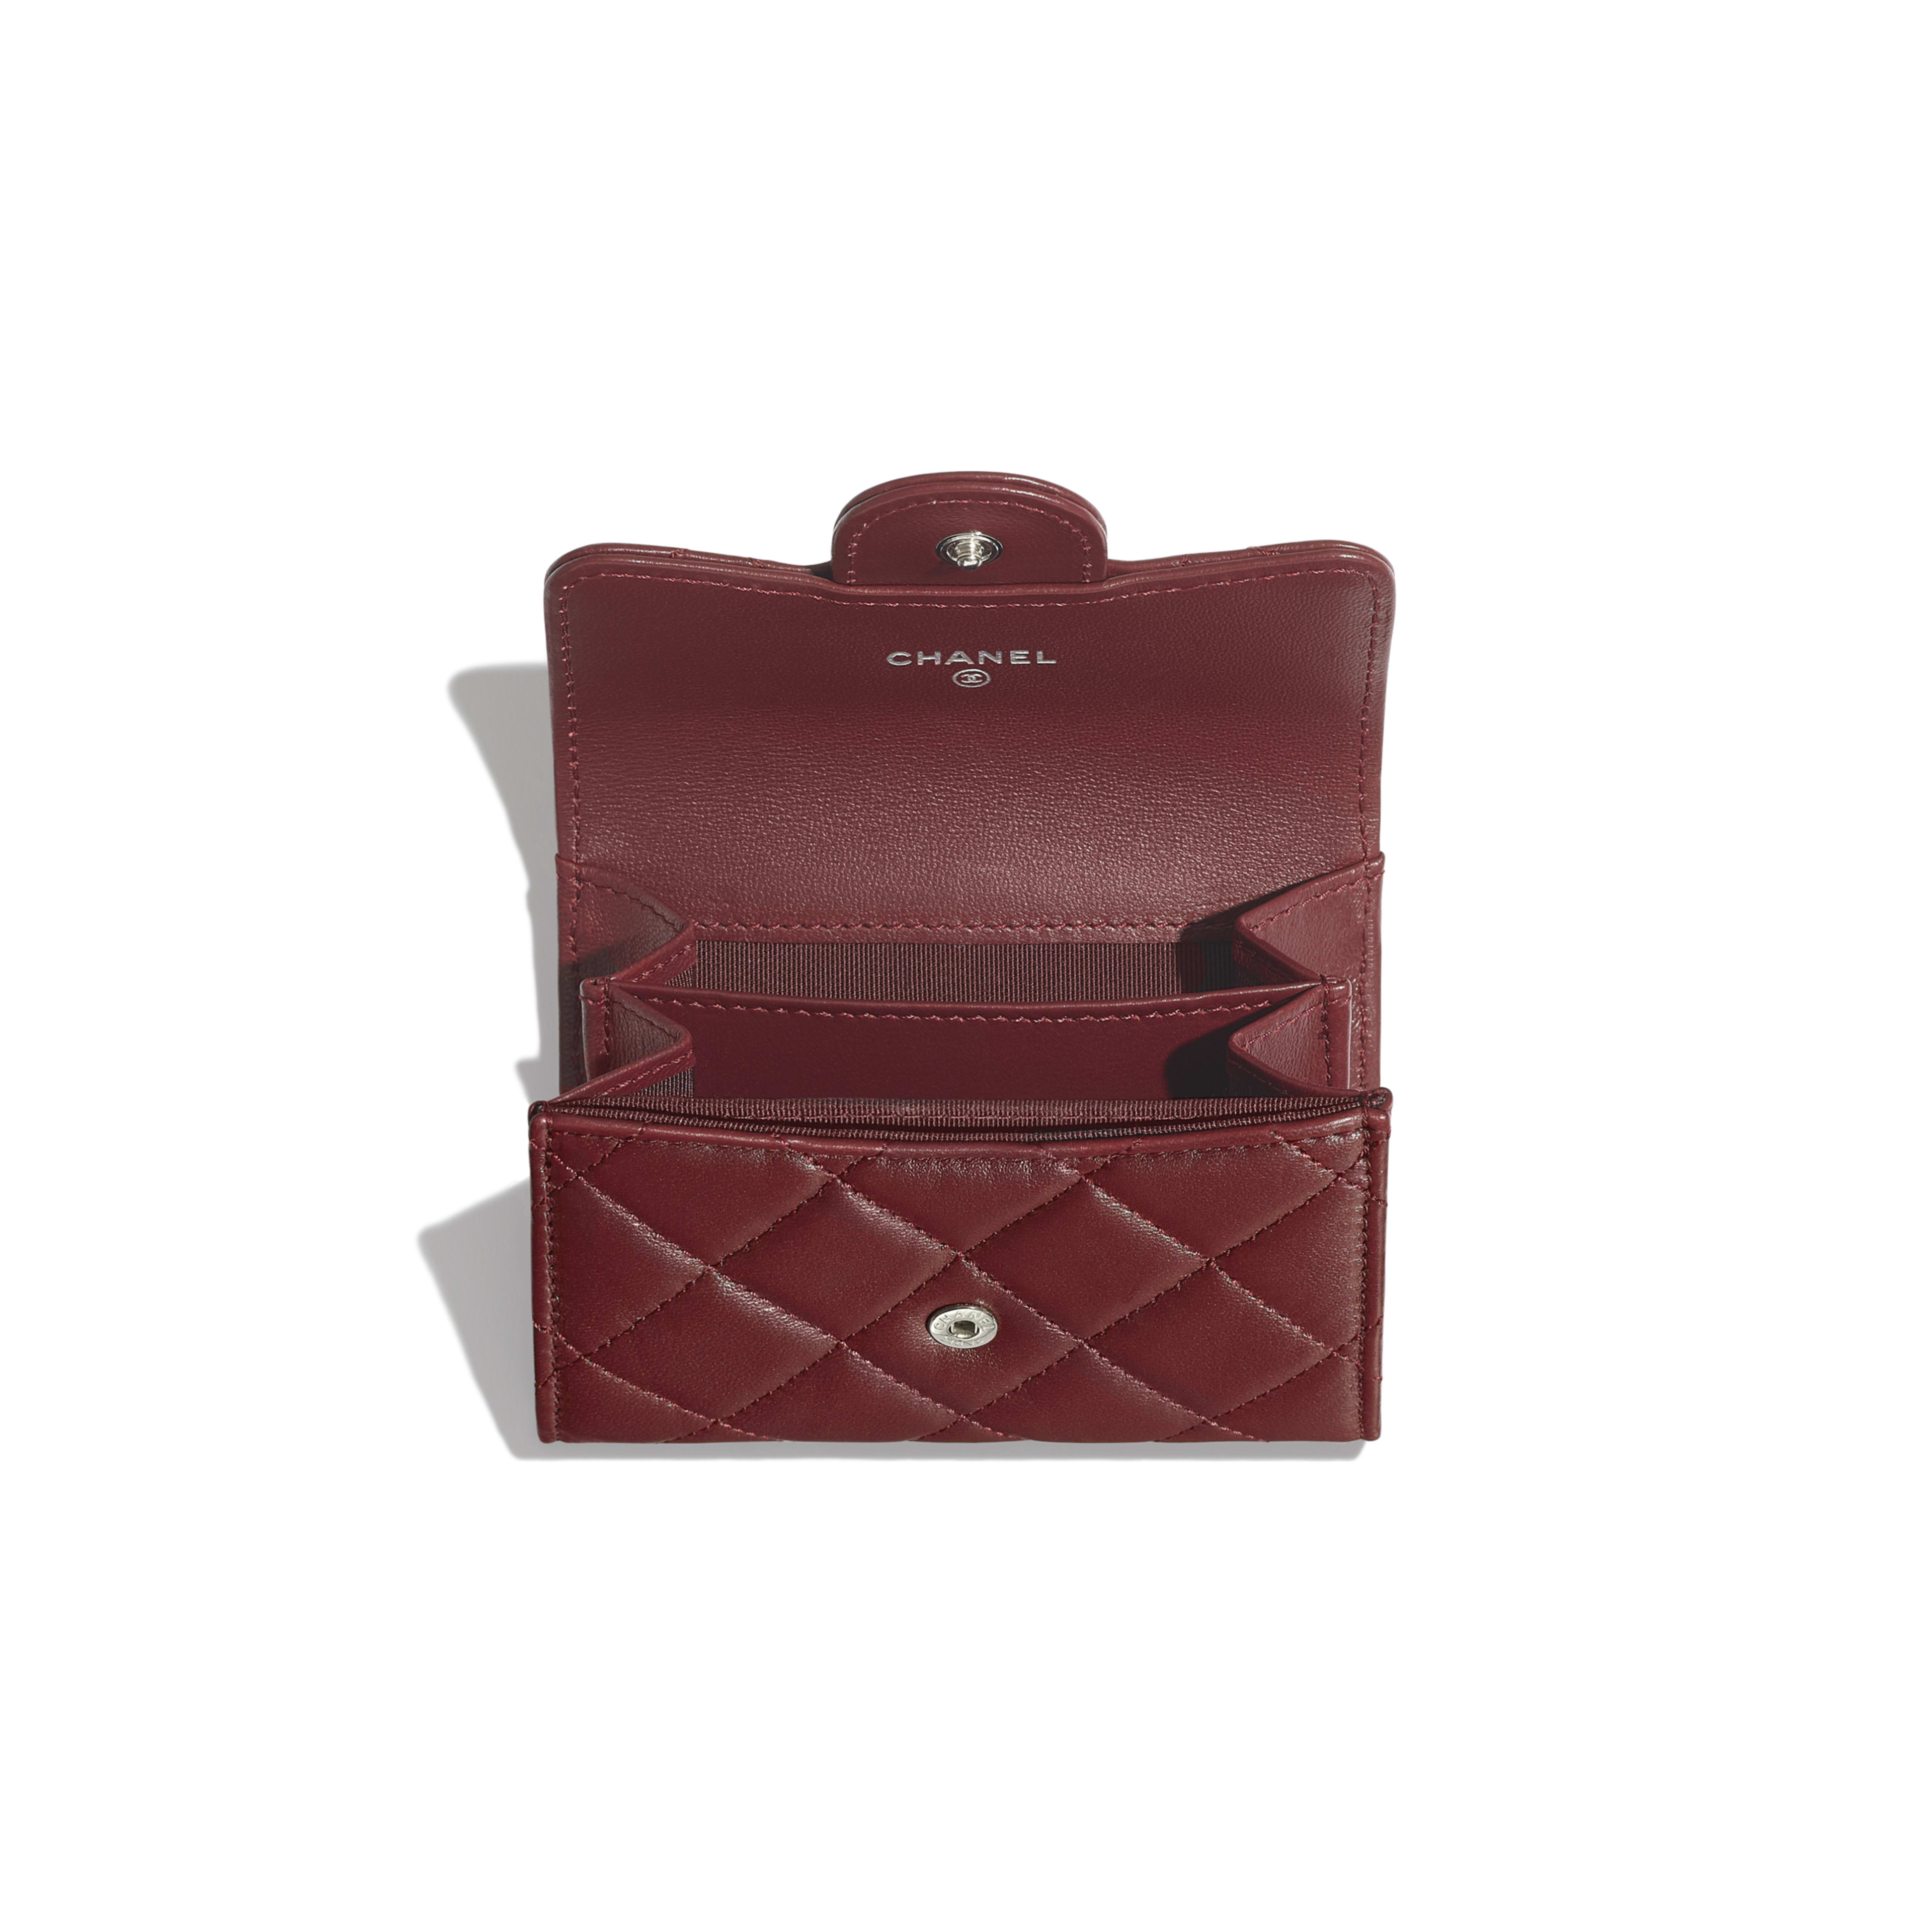 Classic Flap Coin Purse - Burgundy - Lambskin - Other view - see full sized version